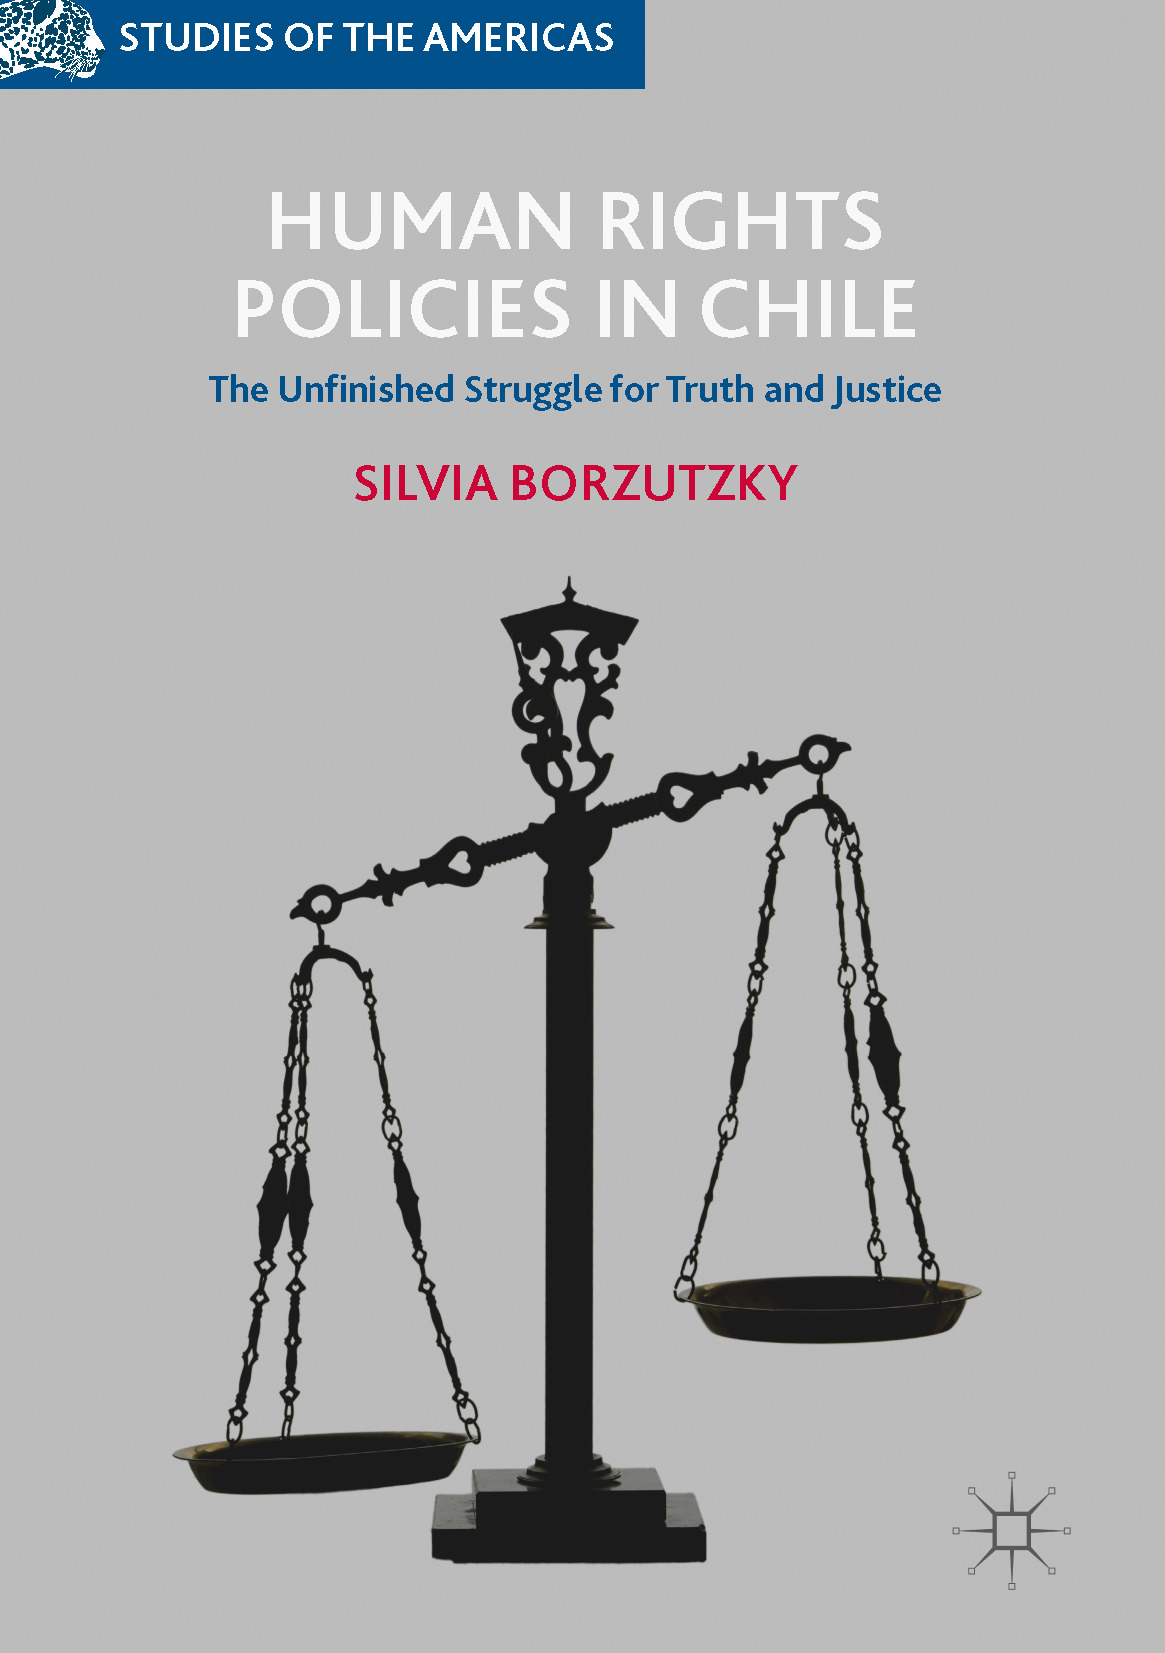 Borzutzky, Silvia - Human Rights Policies in Chile, ebook